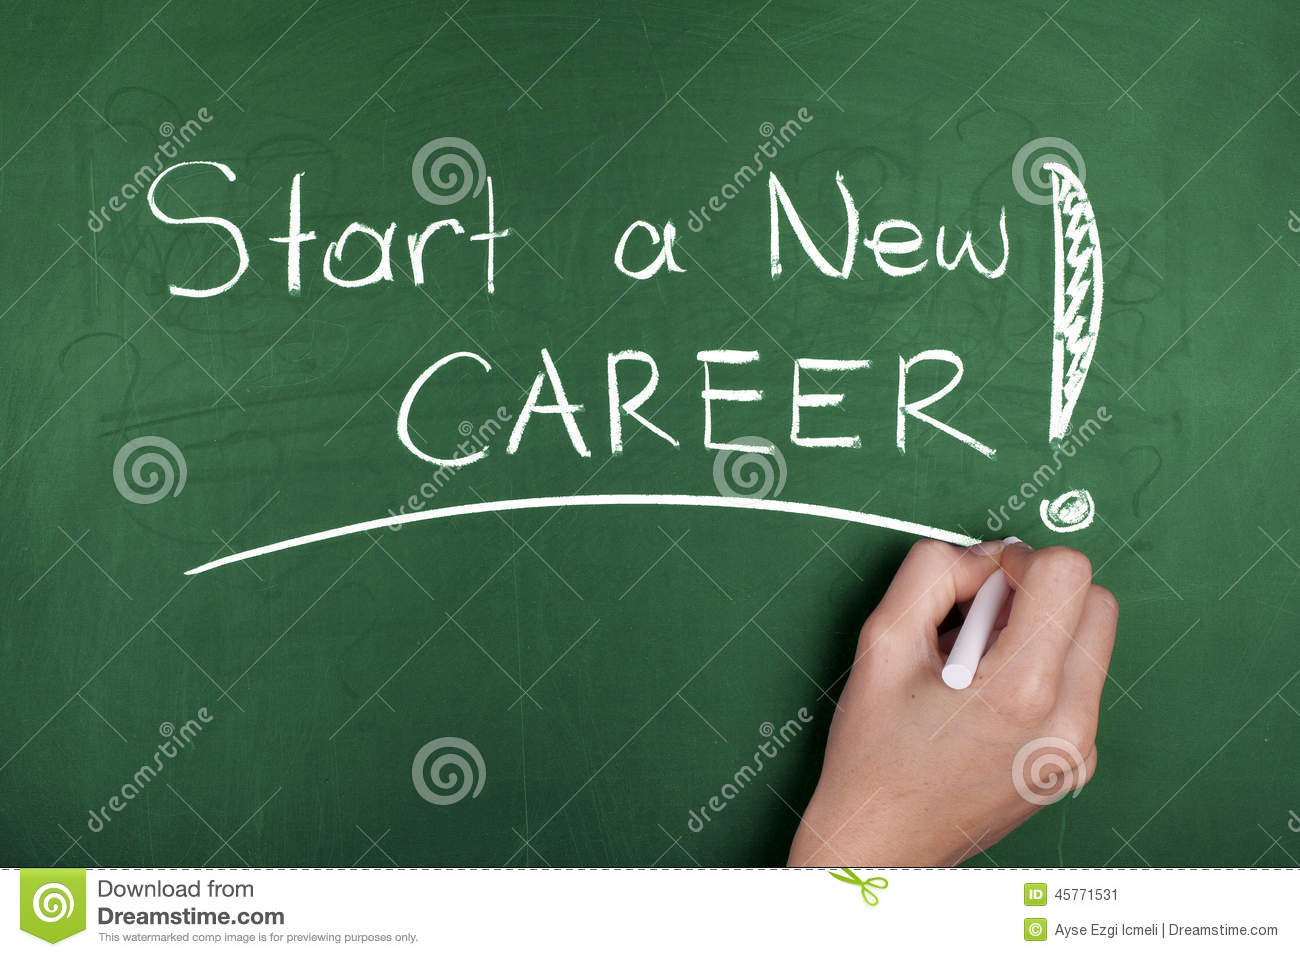 How to Start a Career